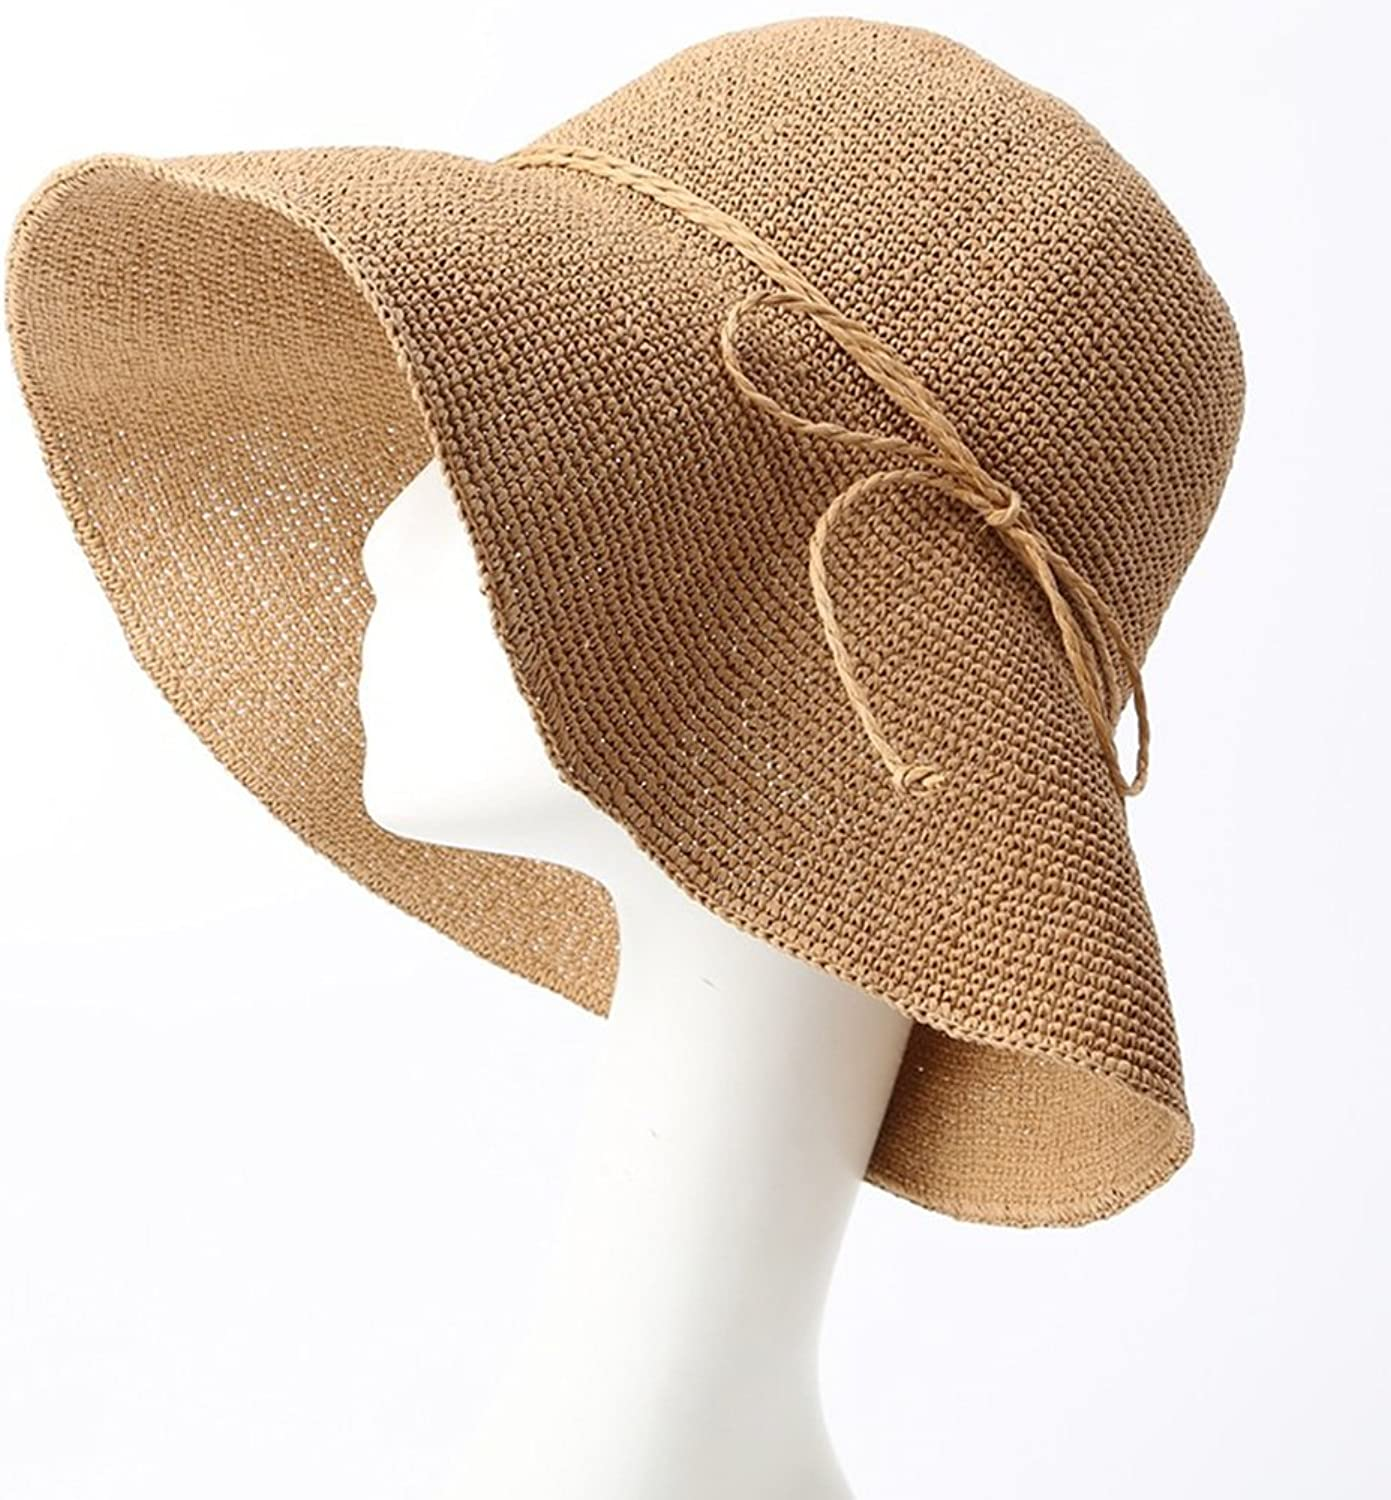 CIGONG Straw Hat Female Summer Beach Hat Seaside Holiday Sunscreen Collapsible Sun Hat Big Visor Summer hat (color   9 , Size   5557  11cm)